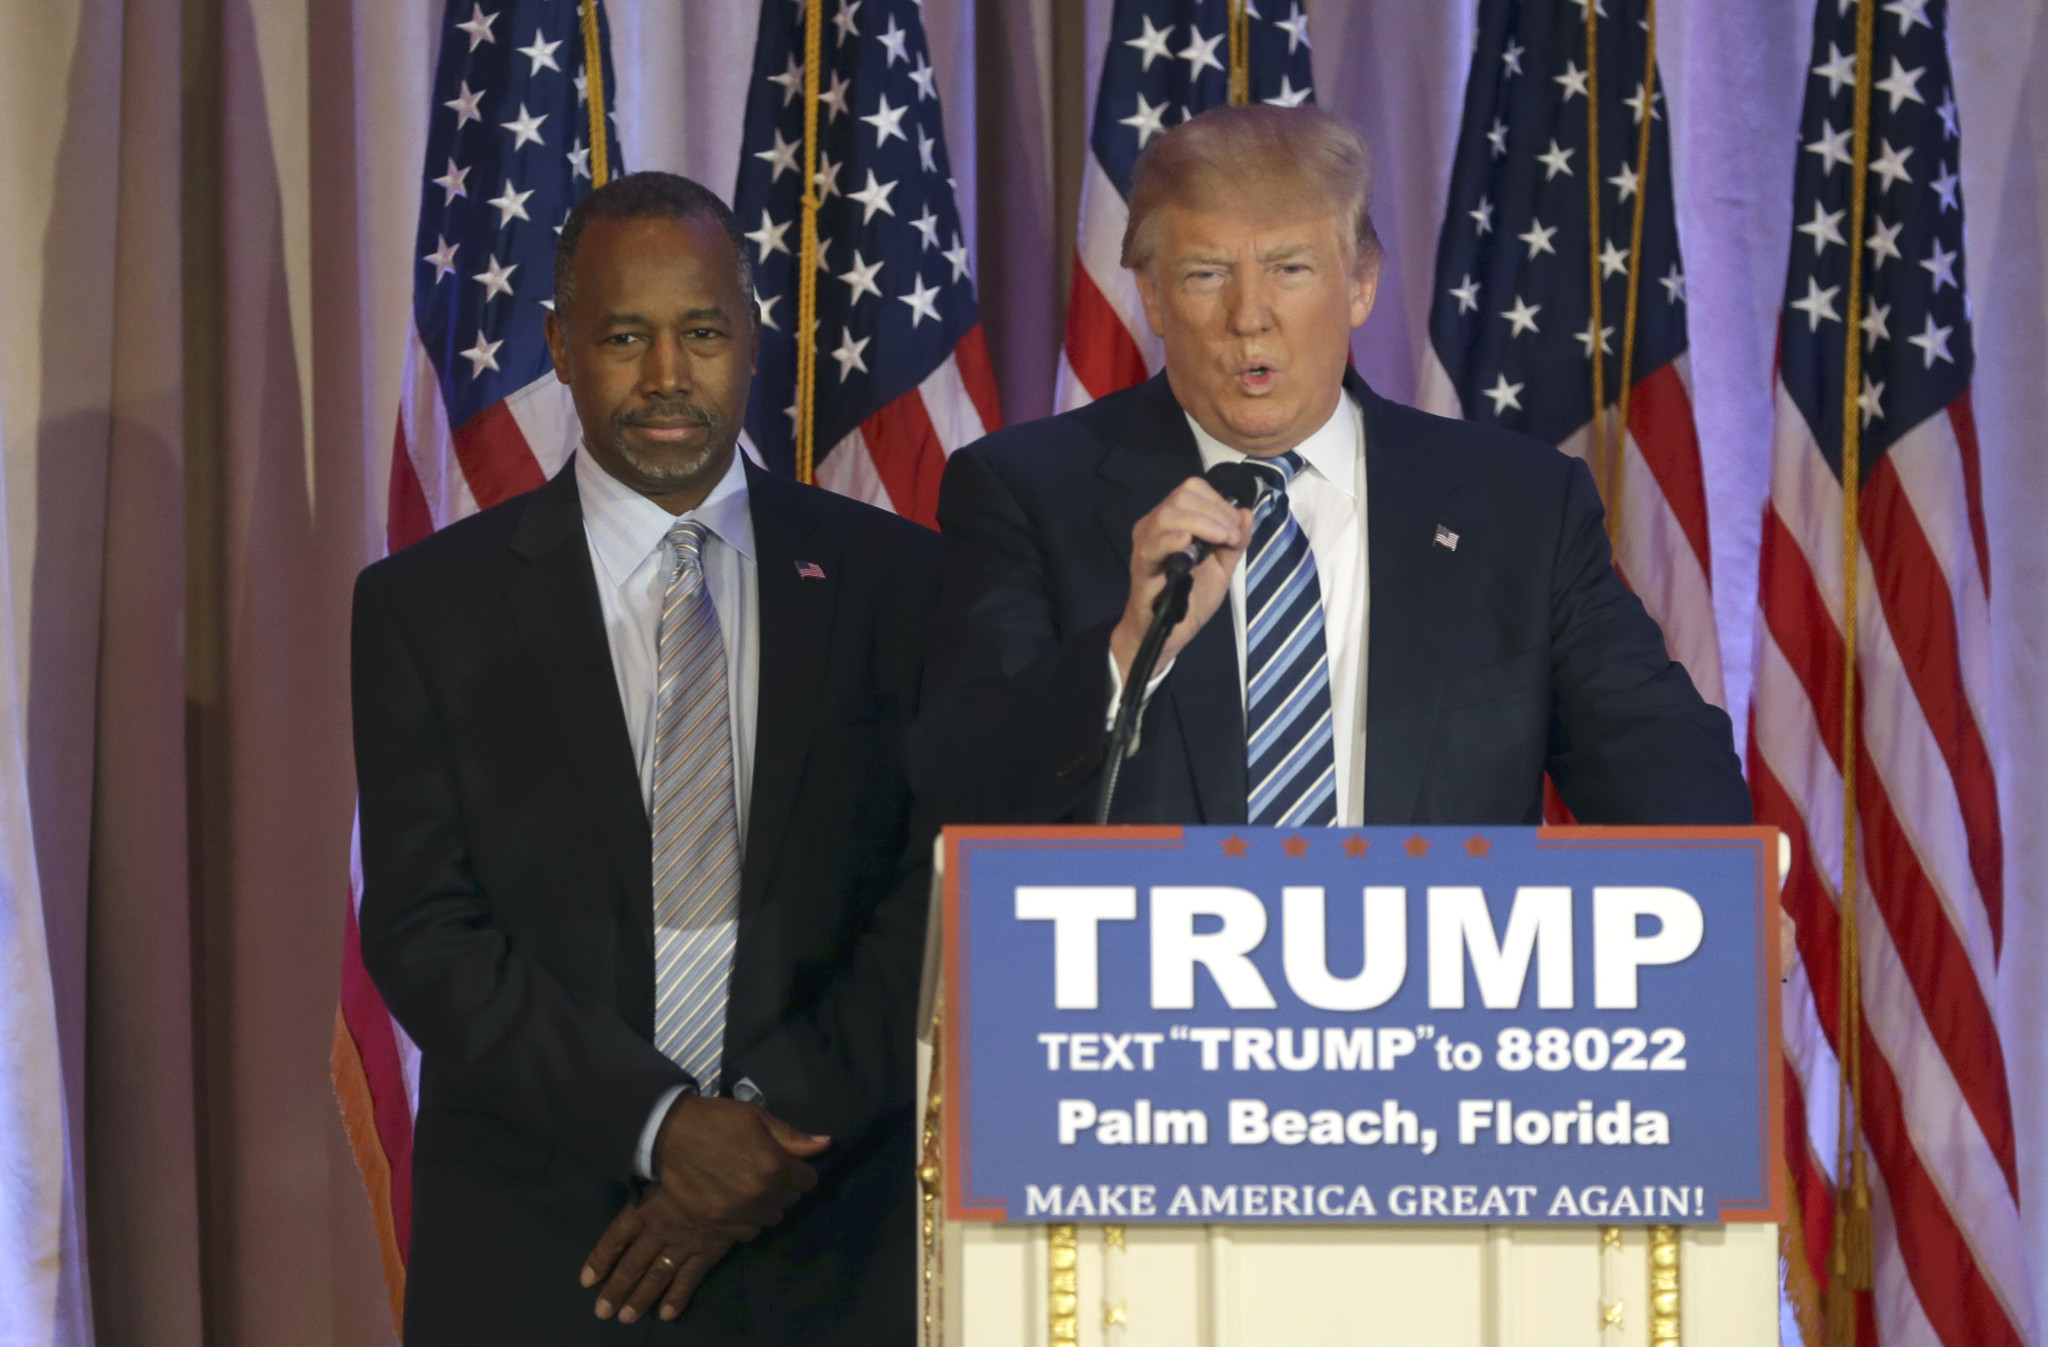 Ben Carson endorses Donald Trump says there are 2 sides to GOP